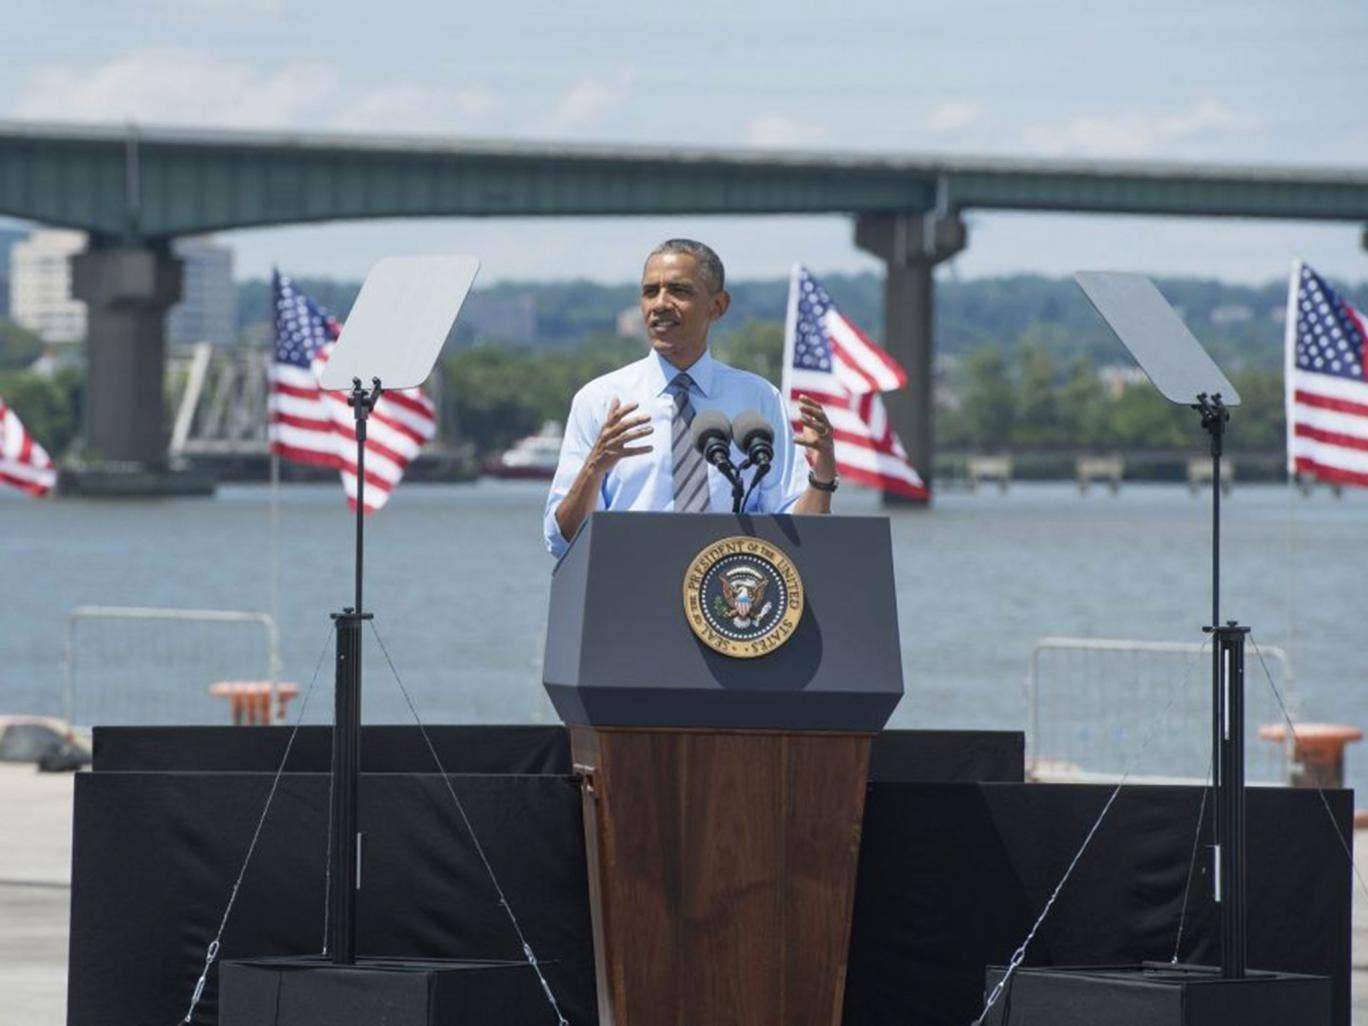 US President Barack Obama delivers remarks on infrastructure in front of the Interstate 495 Bridge at the Port of Wilmington, in Wilmington, Delaware, USA, 17 July 2014. Obama delivered remarks and signed an initiative to increase private sector investmen